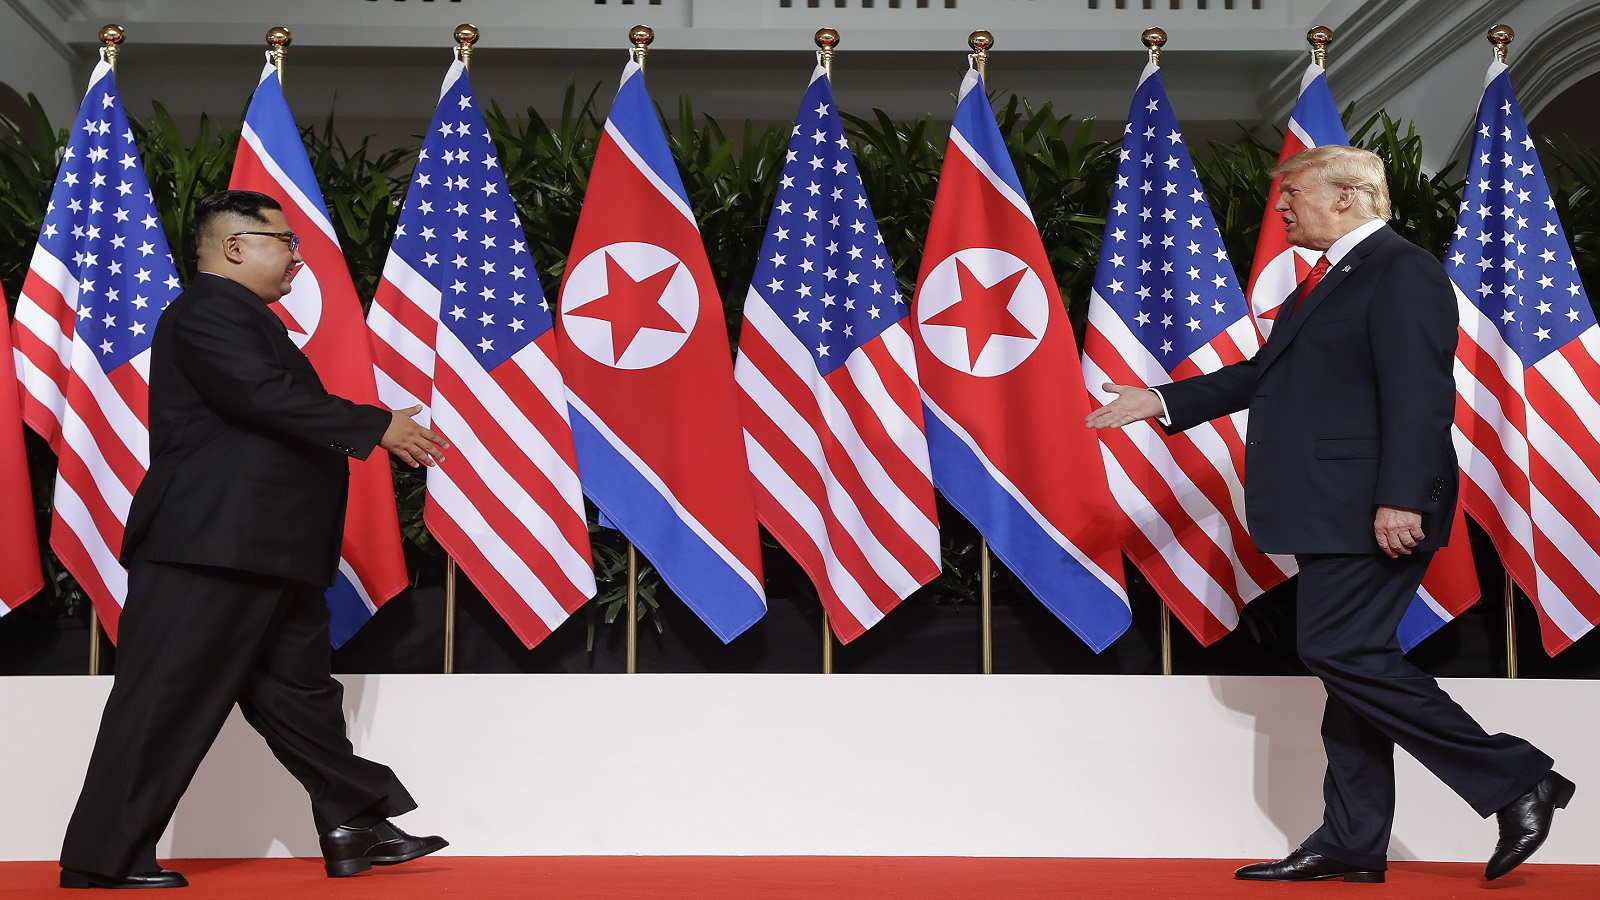 US President Donald Trump and North Korea leader Kim Jong Un walks toward each other at the Capella resort on Sentosa Island Tuesday, June 12, 2018 in Singapore. (AP Photo/Evan Vucci)